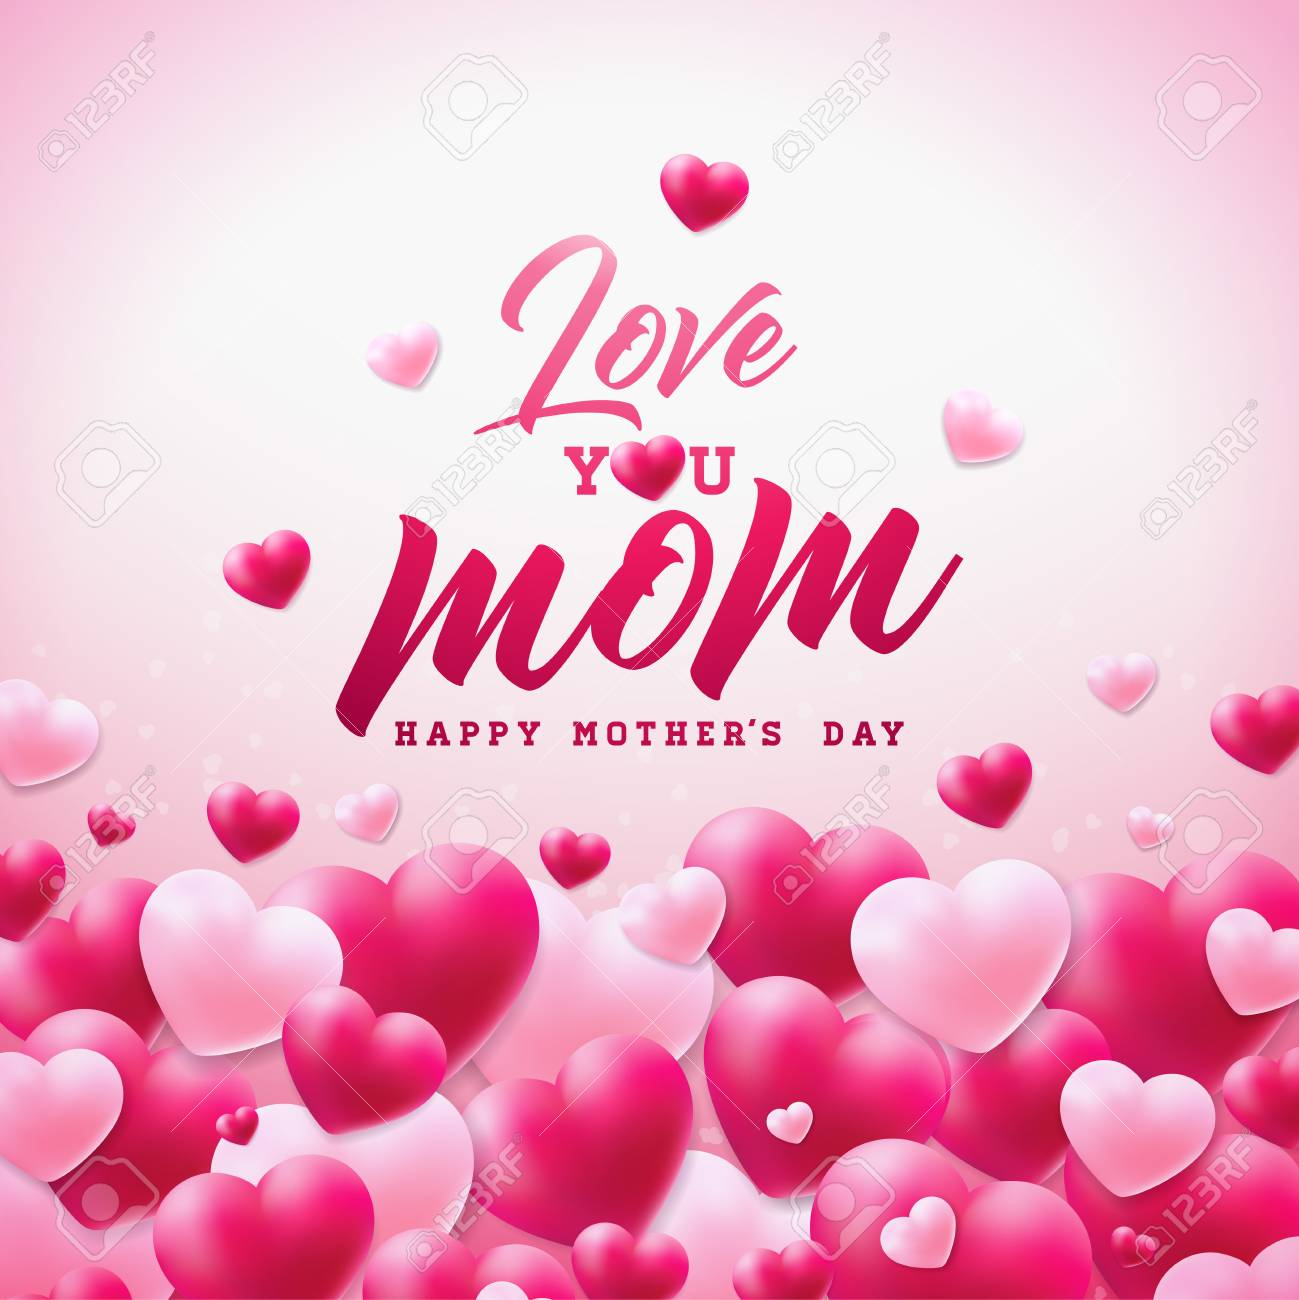 Happy mothers day greeting card design with heart and love you happy mothers day greeting card design with heart and love you mom typographic elements on white m4hsunfo